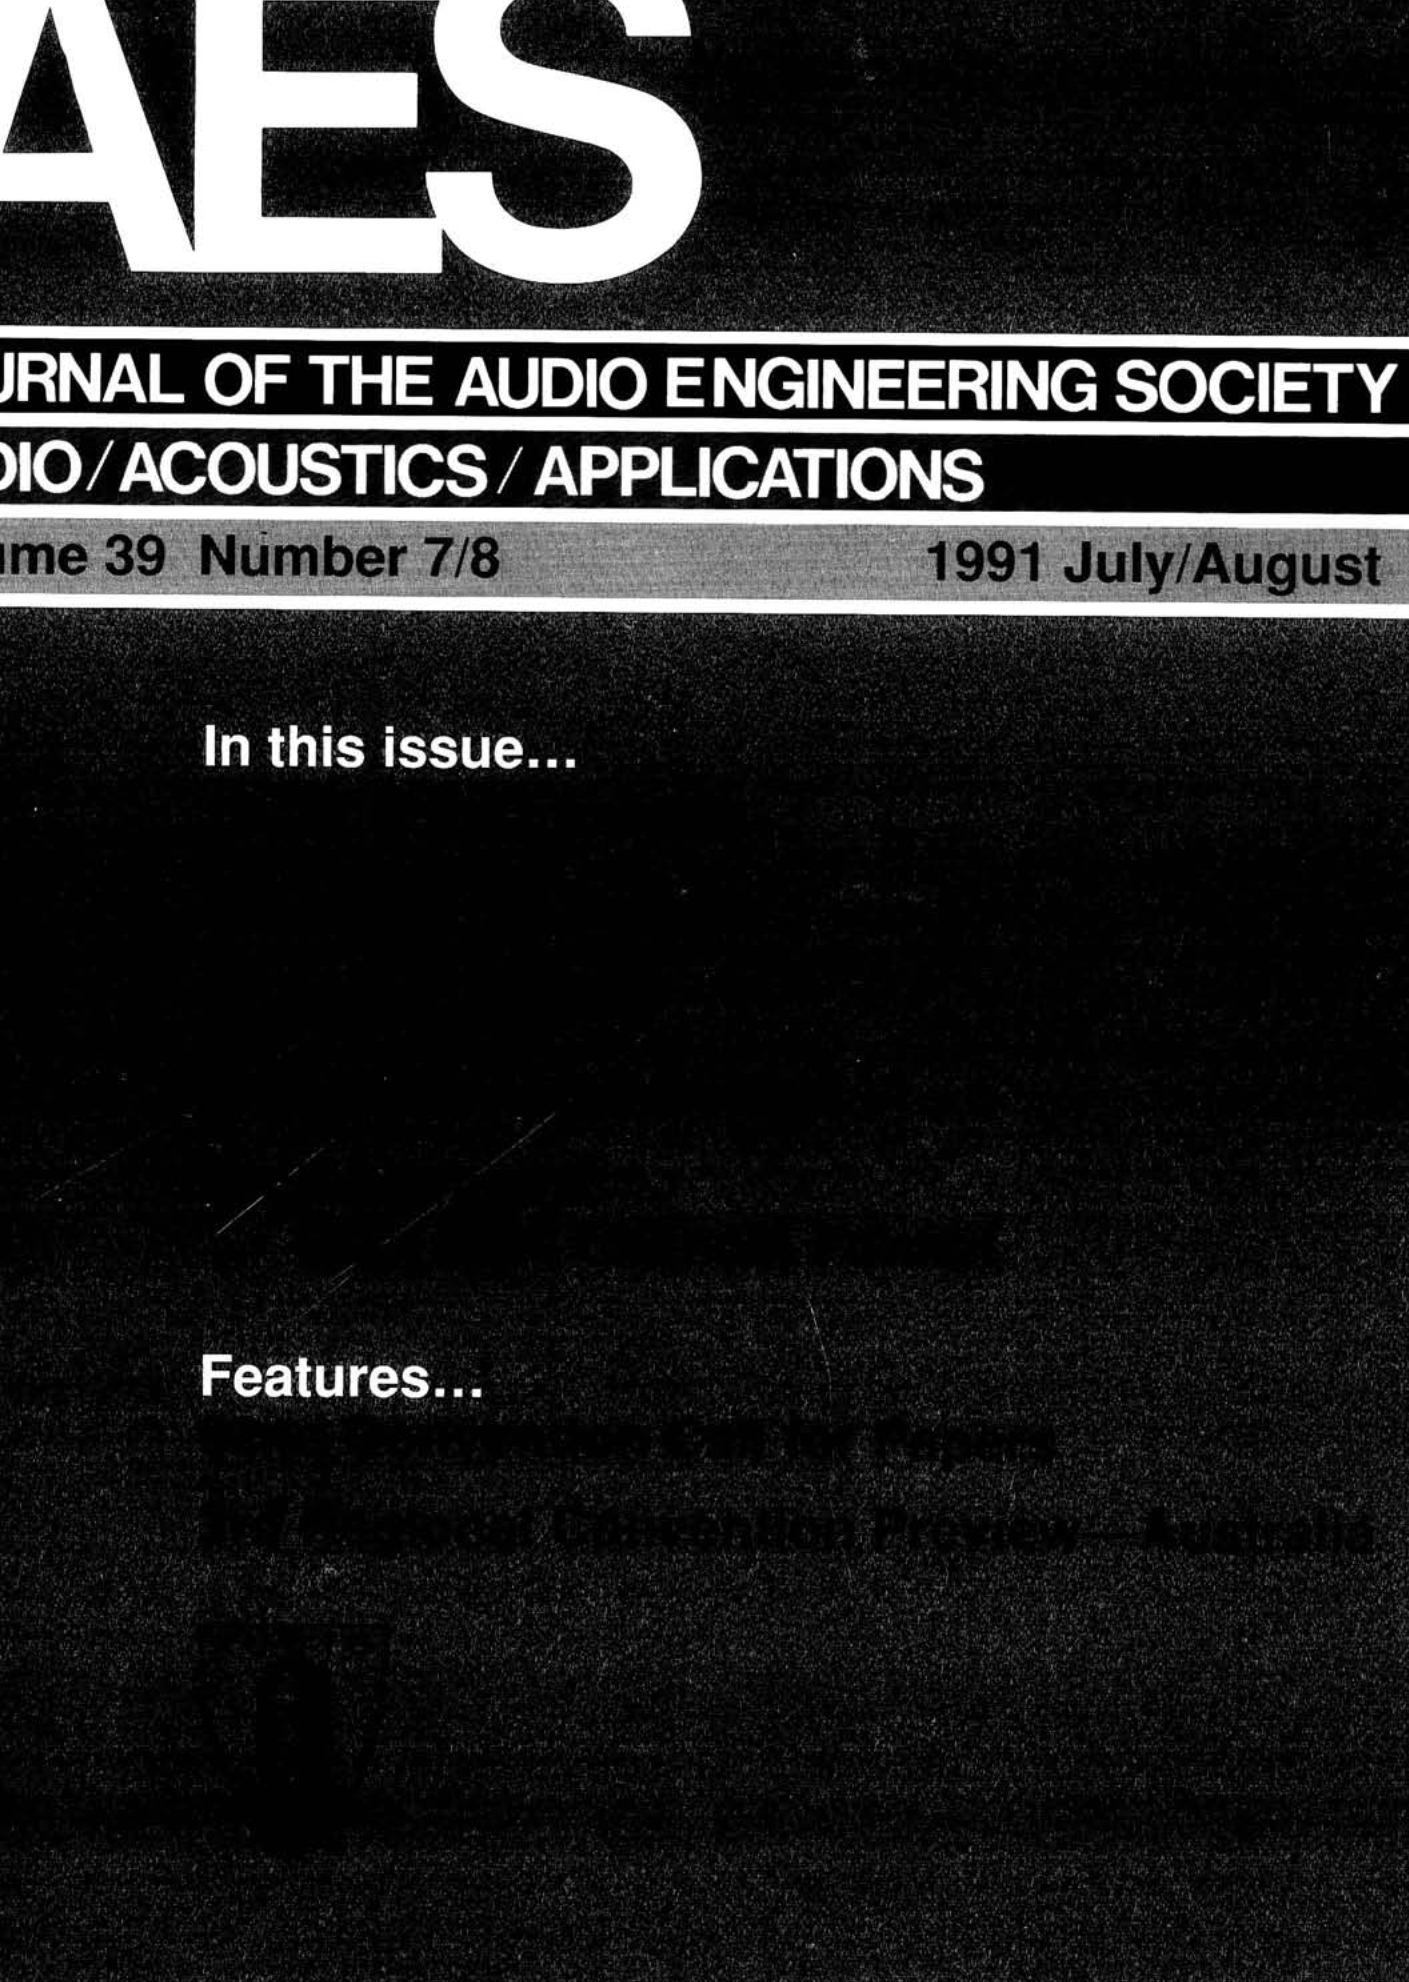 Aes E Library Complete Journal Volume 39 Issue 7 8 Led Using 555 Http Www Circuitdiagram Org Fading Pulsing